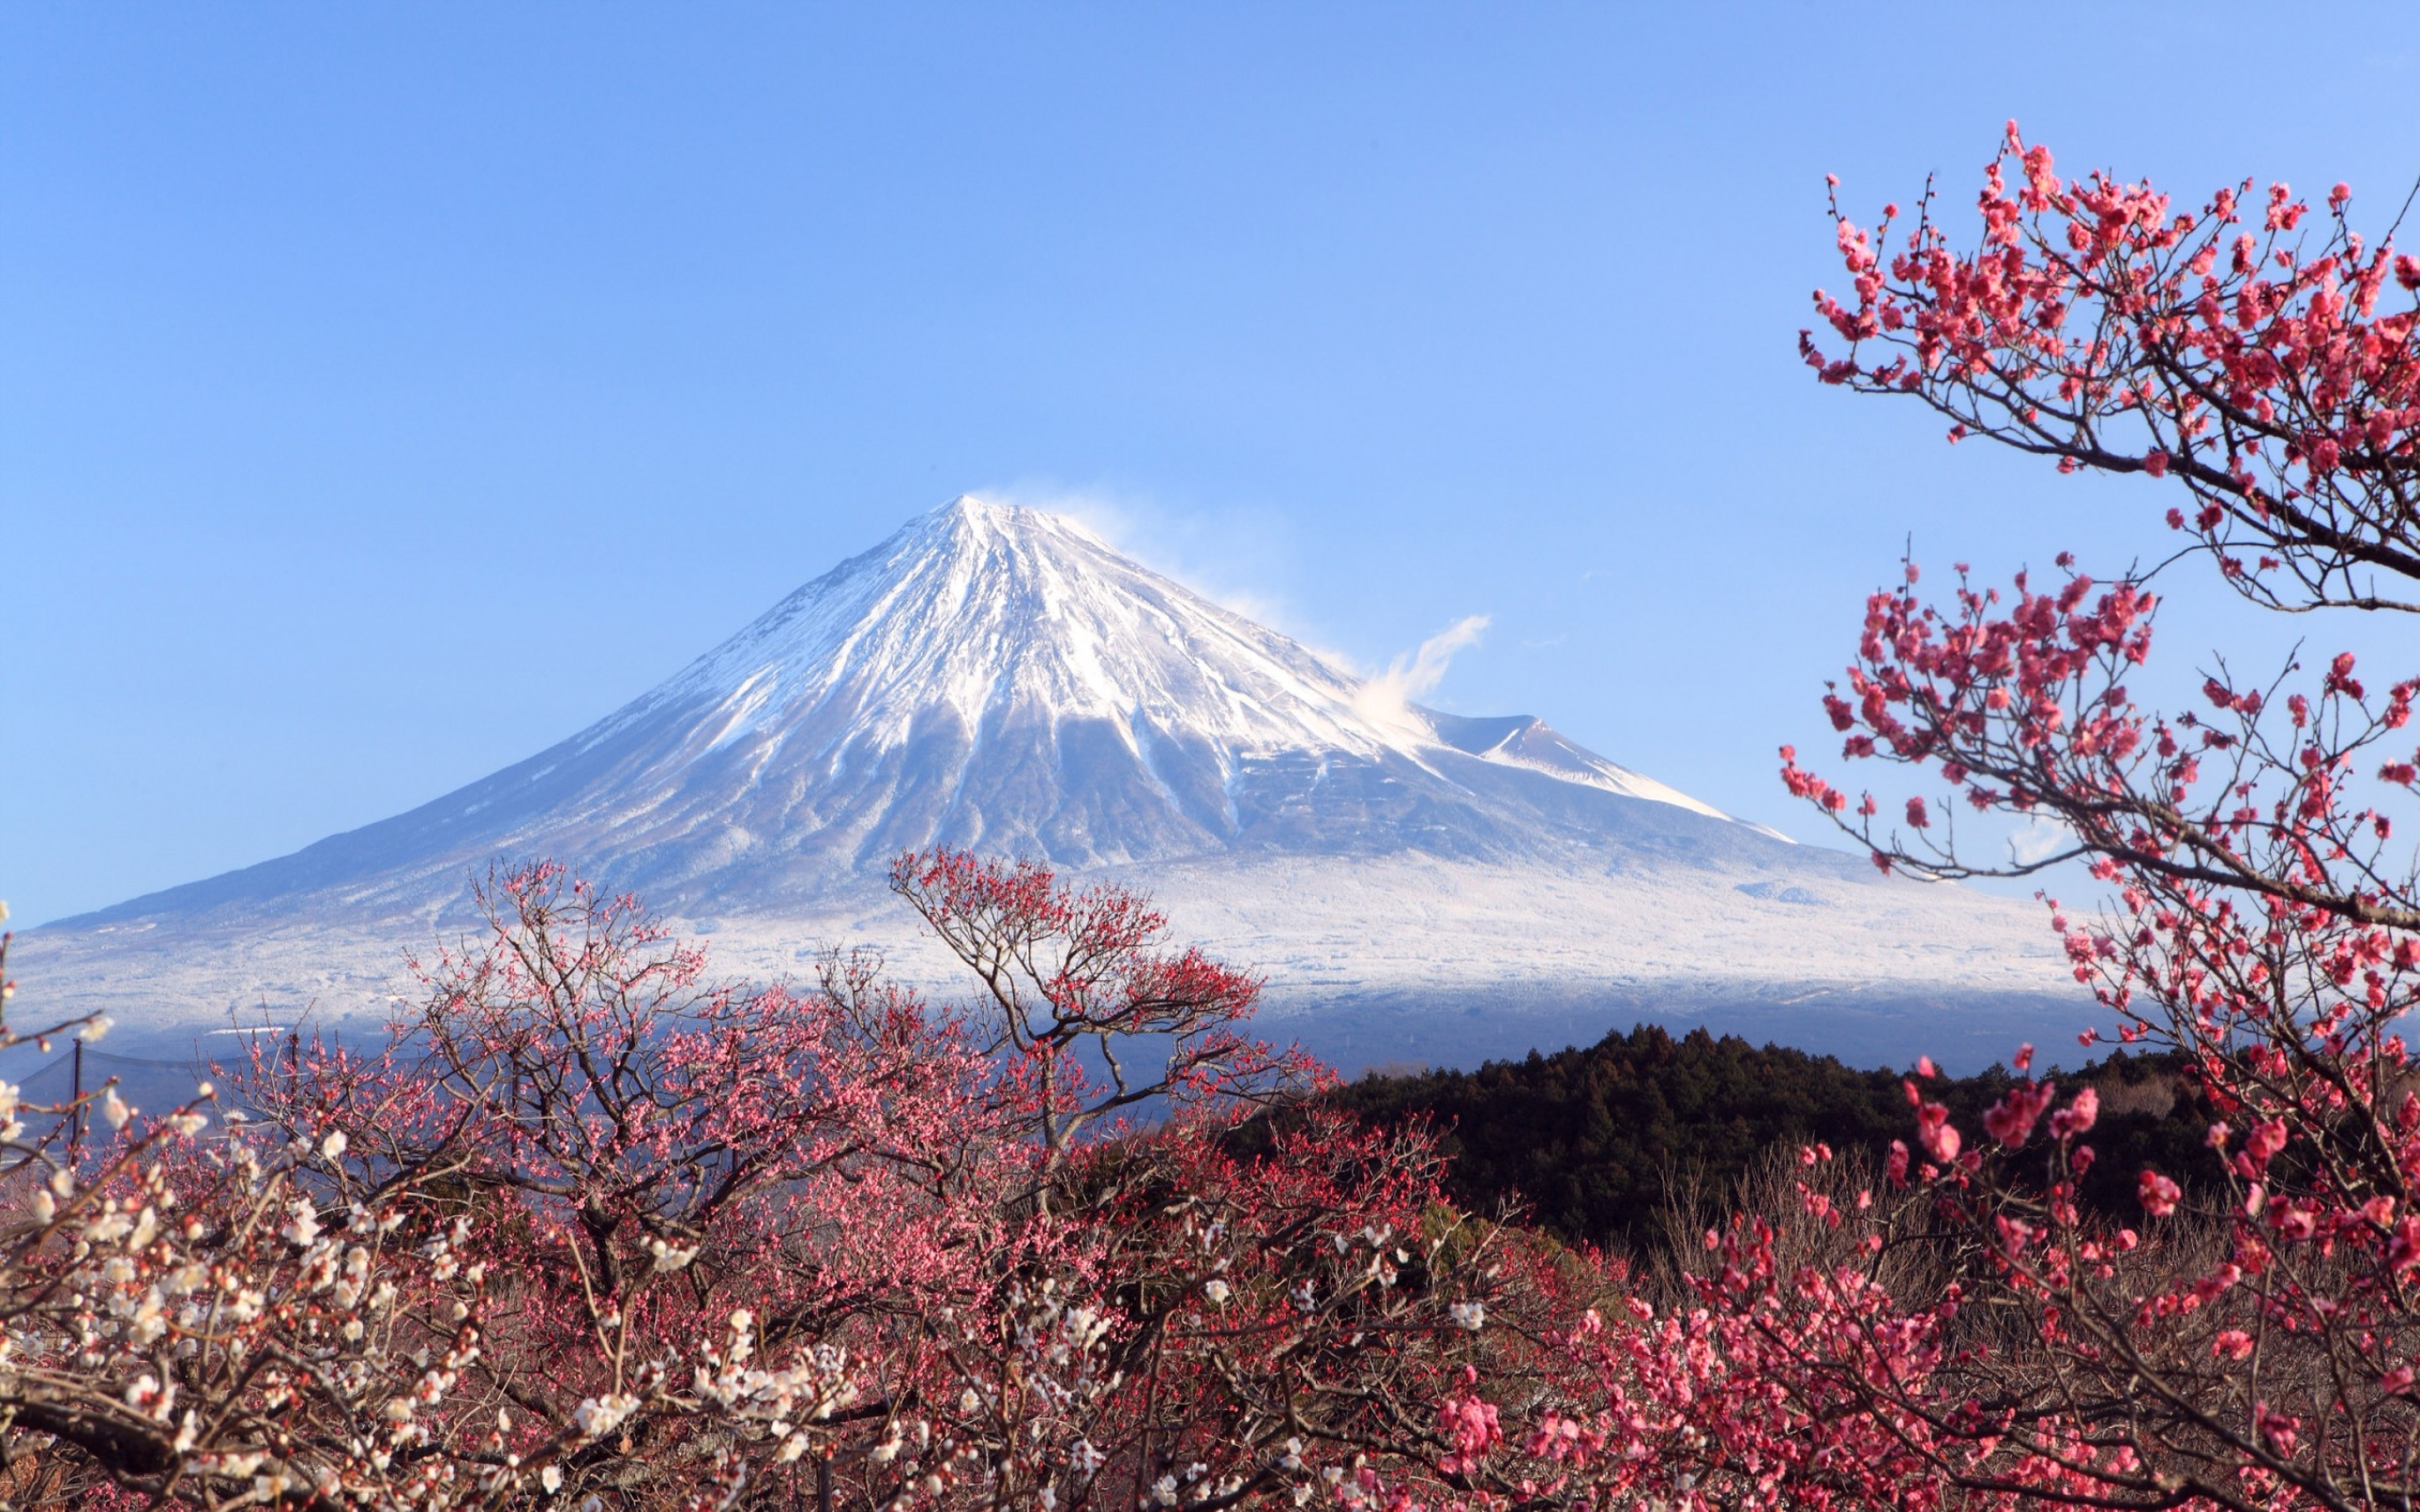 15 Hd Mount Fuji Japan Wallpapers